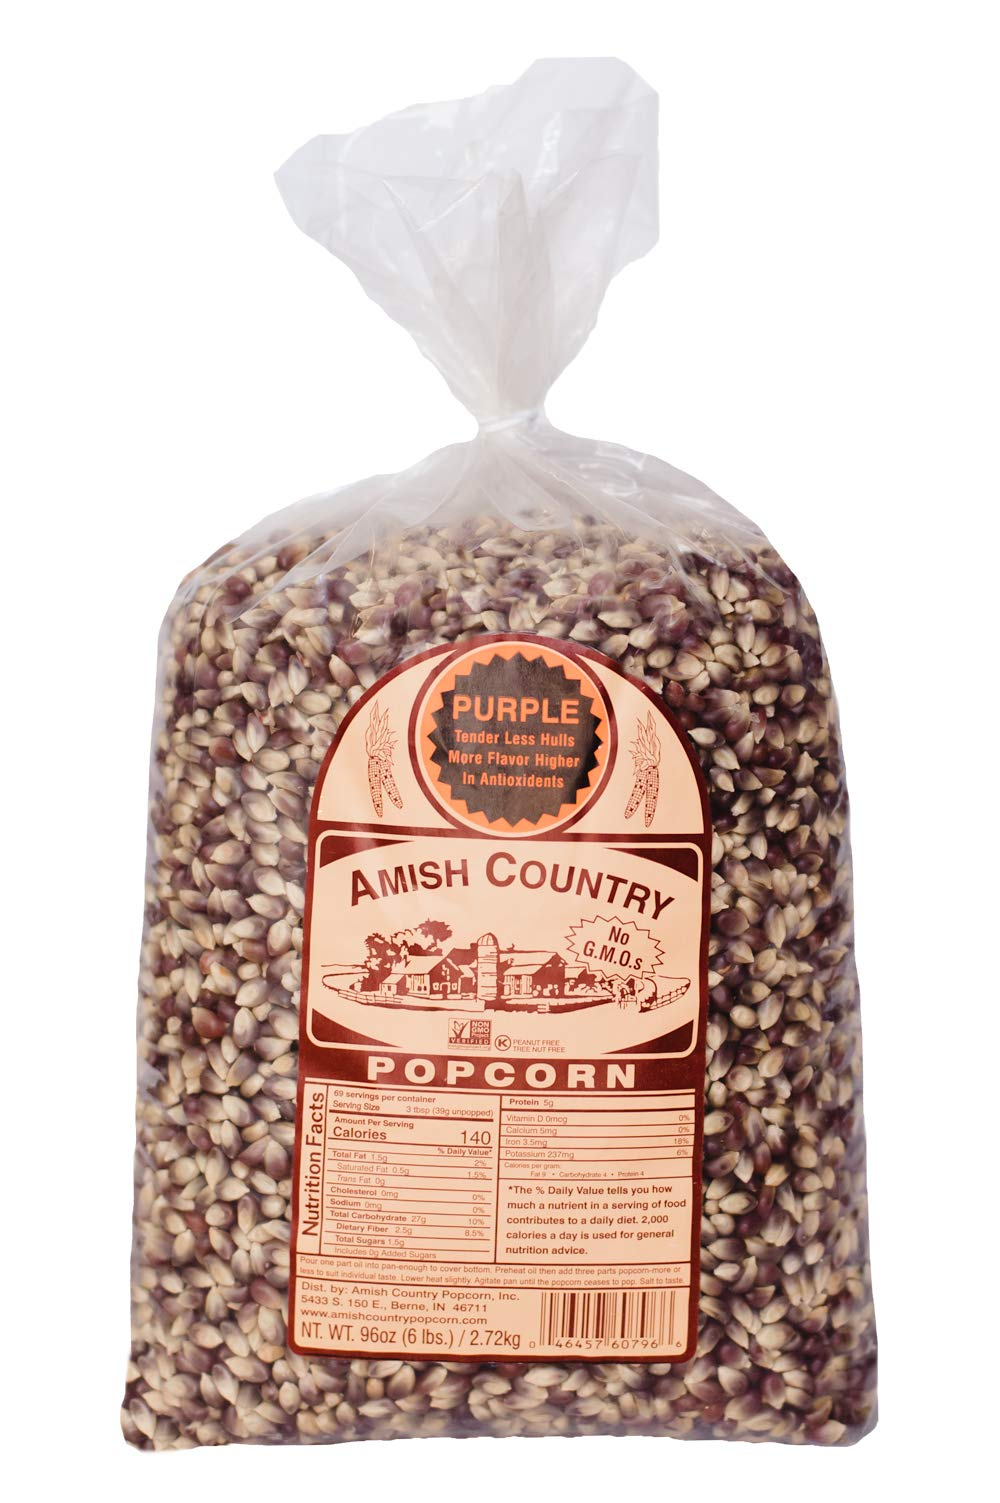 Amish Country Popcorn - Old Fashioned Purple Popcorn - Non GMO, Gluten Free, Microwaveable, Stovetop and Air Popper Friendly - with Recipe Guide (6 Lb) by Amish Country Popcorn